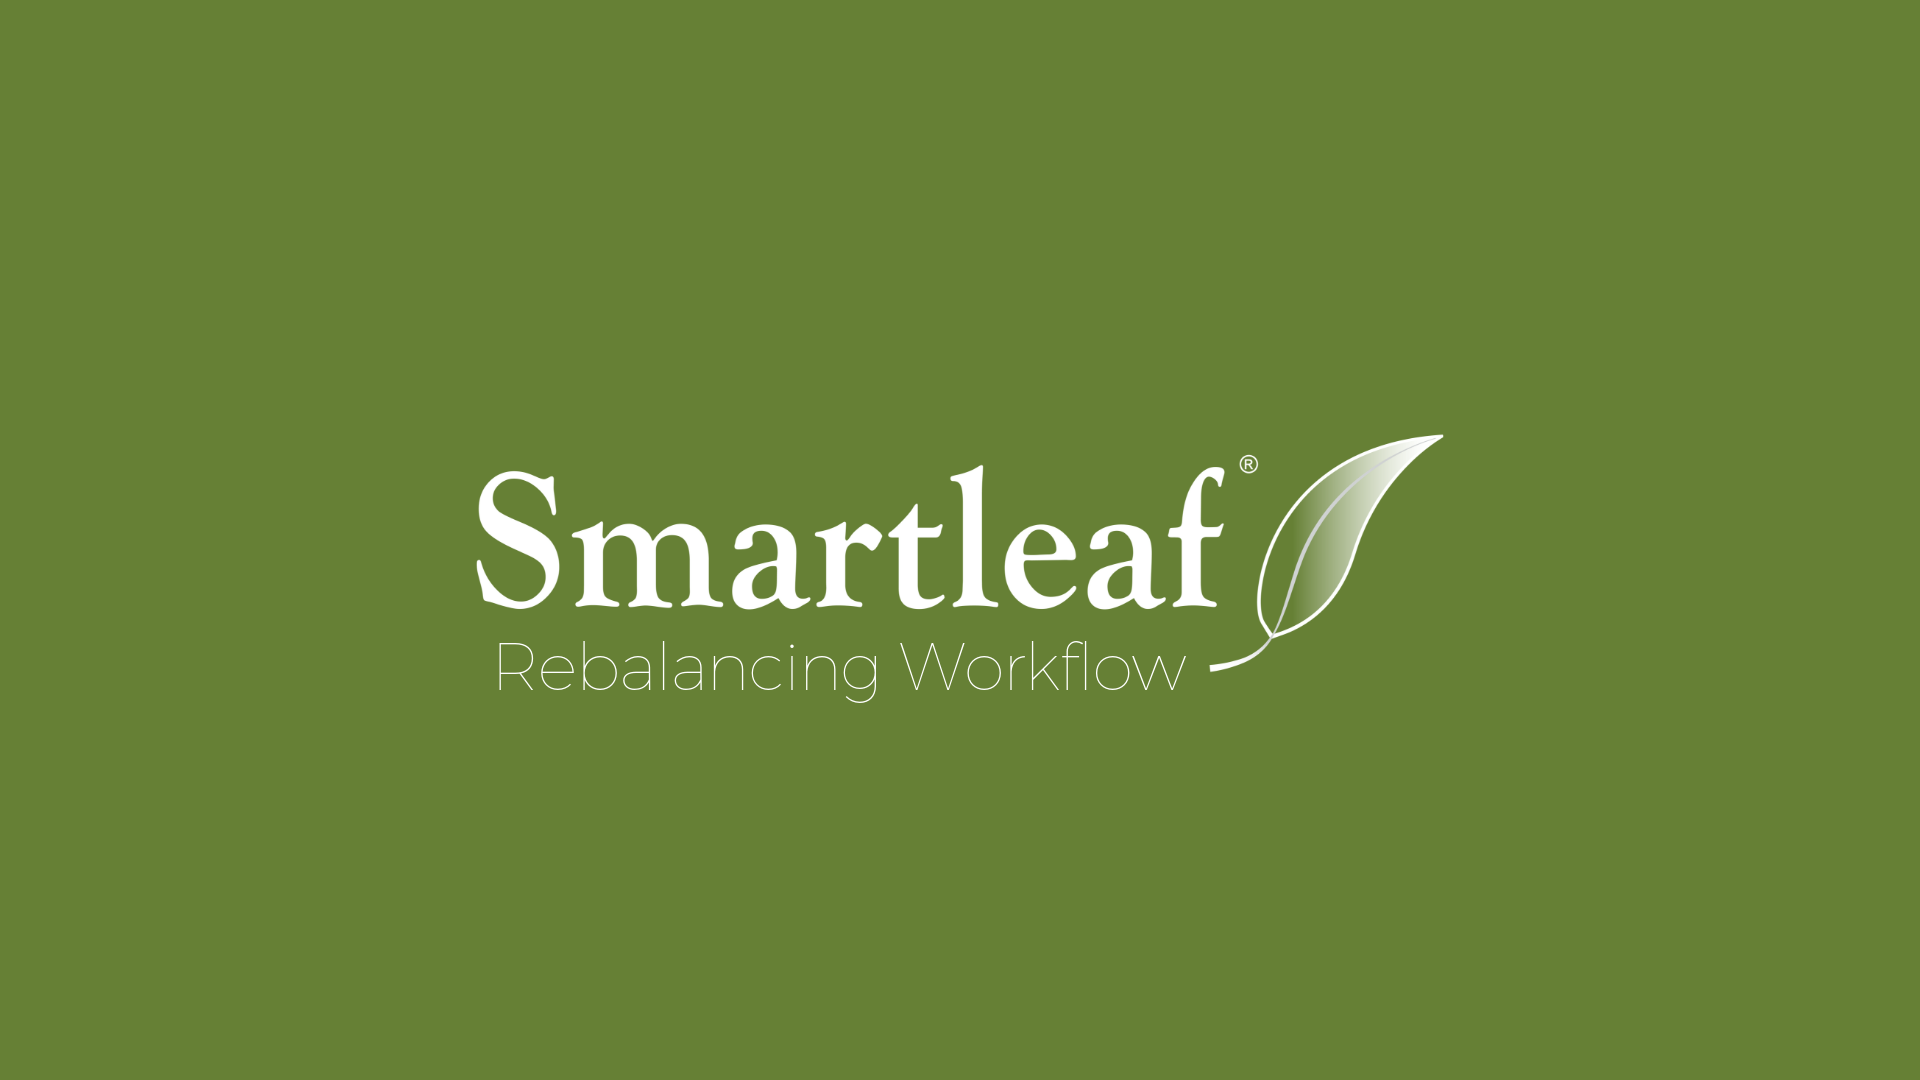 Smartleaf Demo: Rebalancing Workflow